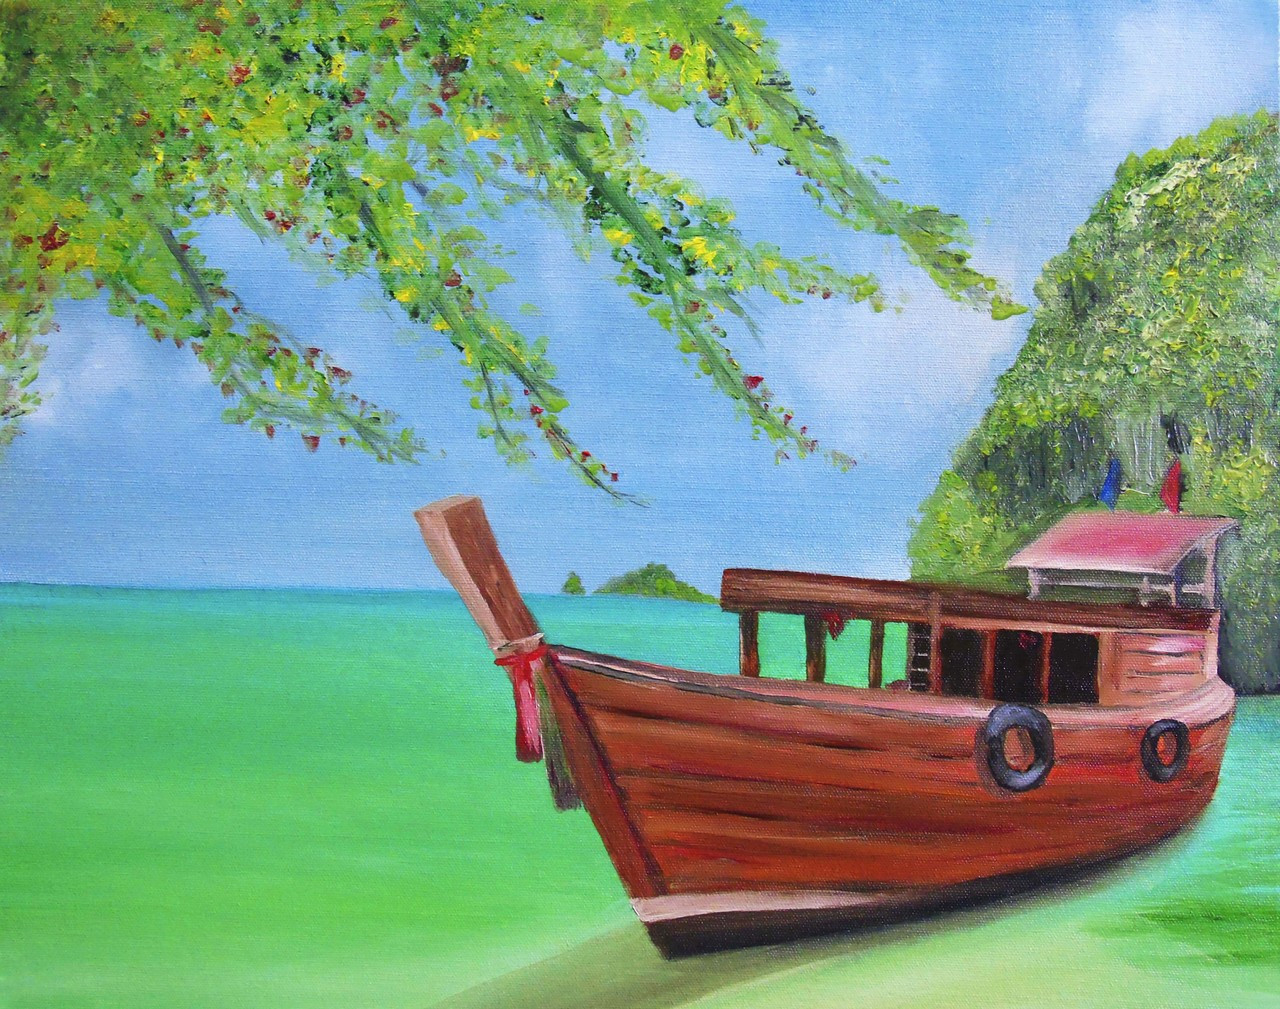 Thailand Beachview Oil Painting (ART_5097_30599) - Handpainted Art Painting  - 22in X 18in (Framed)